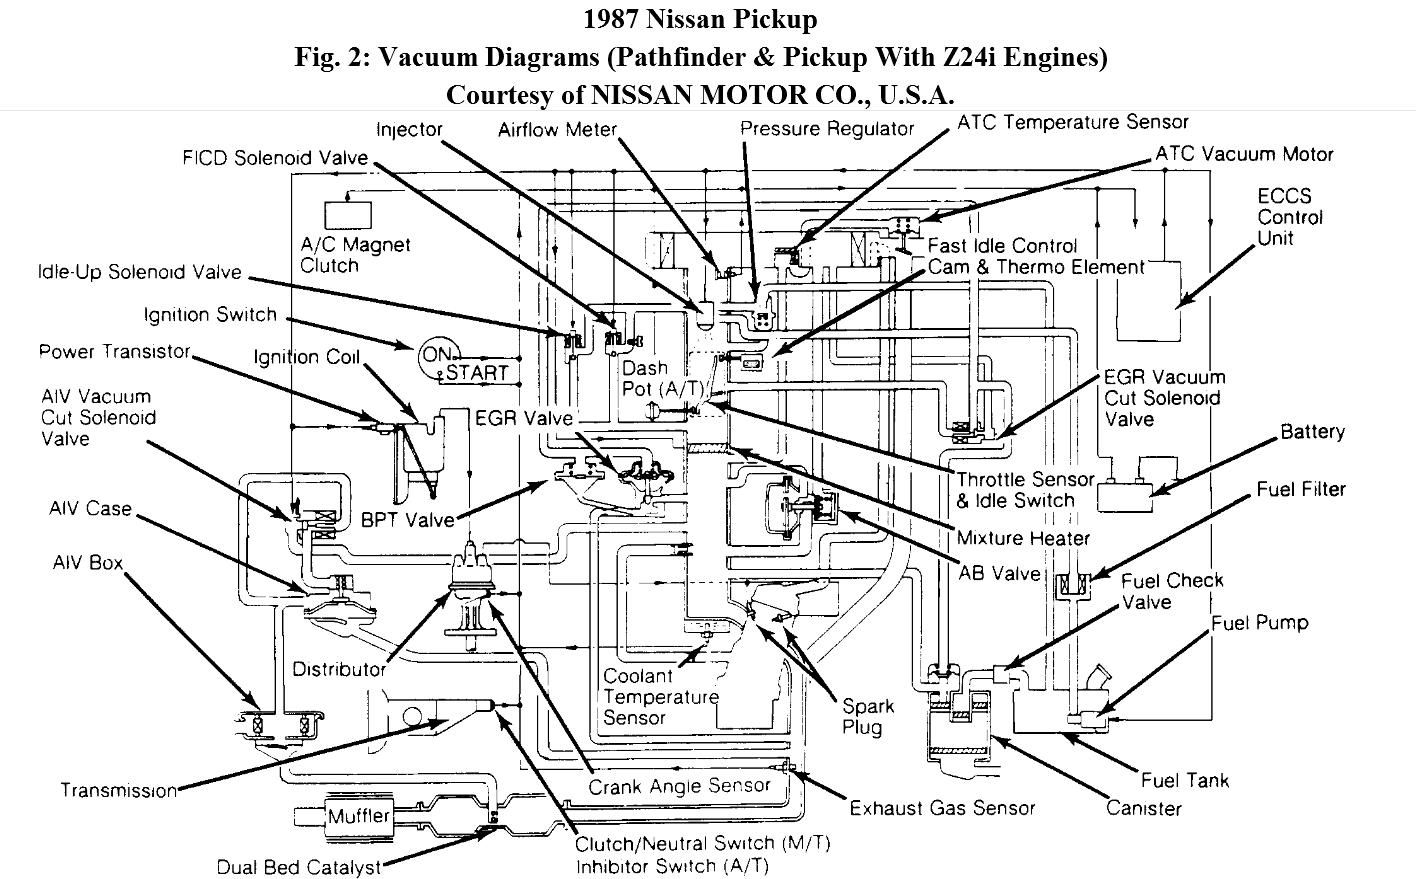 1987 Nissan Pickup Vacuum Hoses Diagram Wiring Schematic 1986 720 1988 Z24i For A Z24 Four Cylinder Two Wheel Drive Manual 180